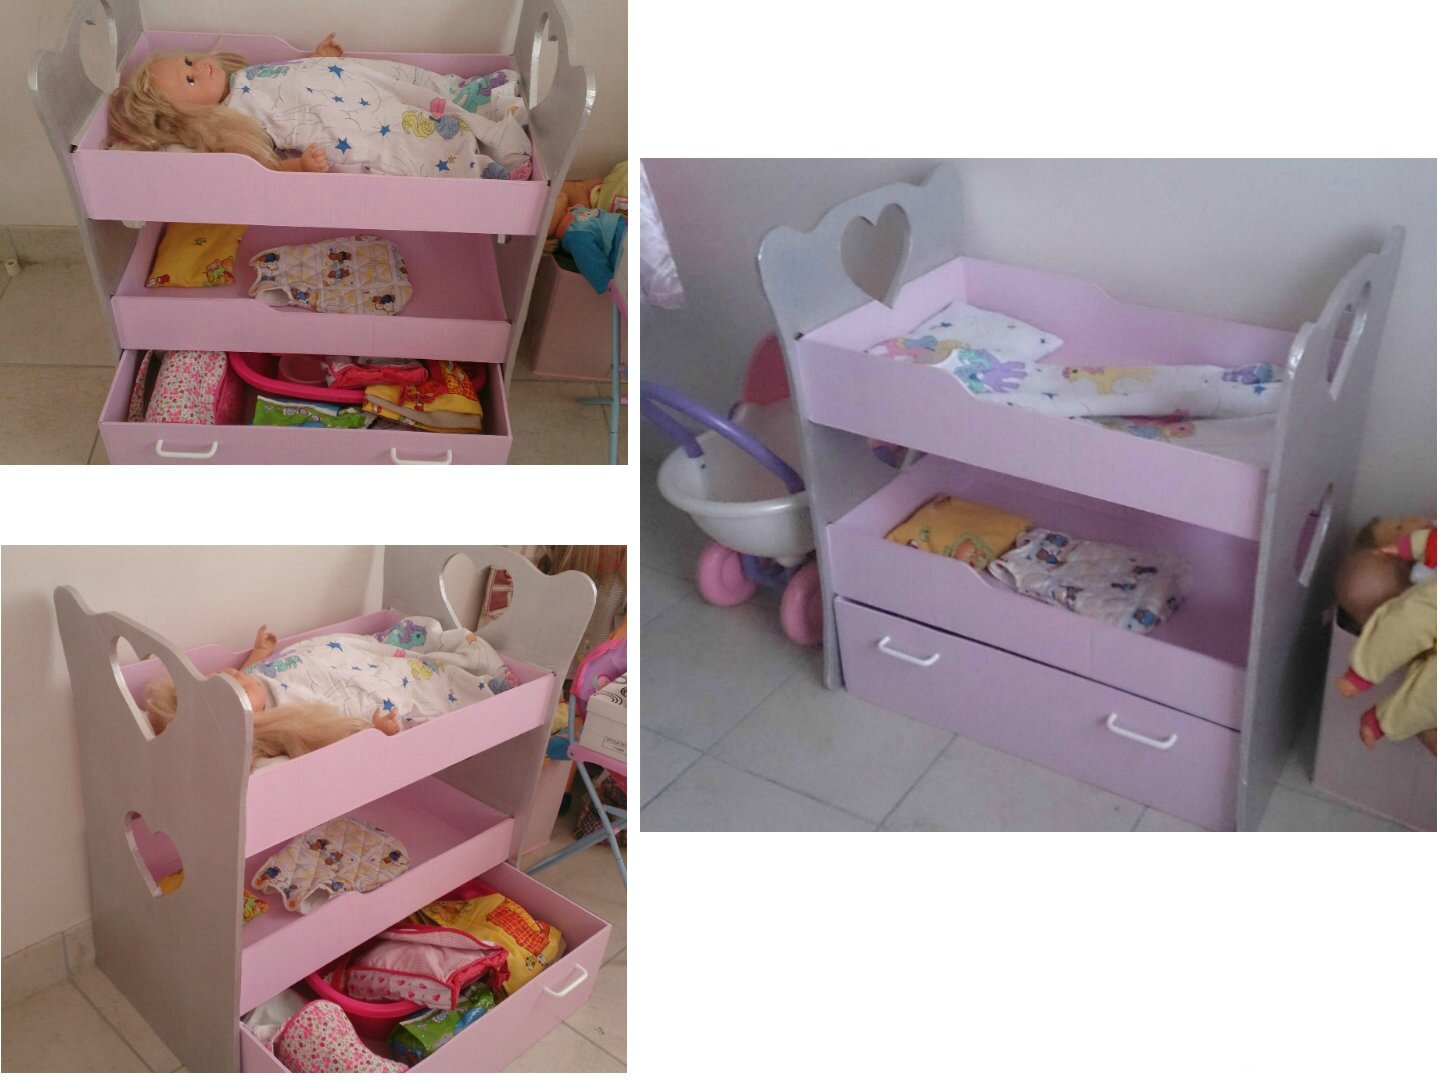 lit de poup e en carton home made by lulue. Black Bedroom Furniture Sets. Home Design Ideas